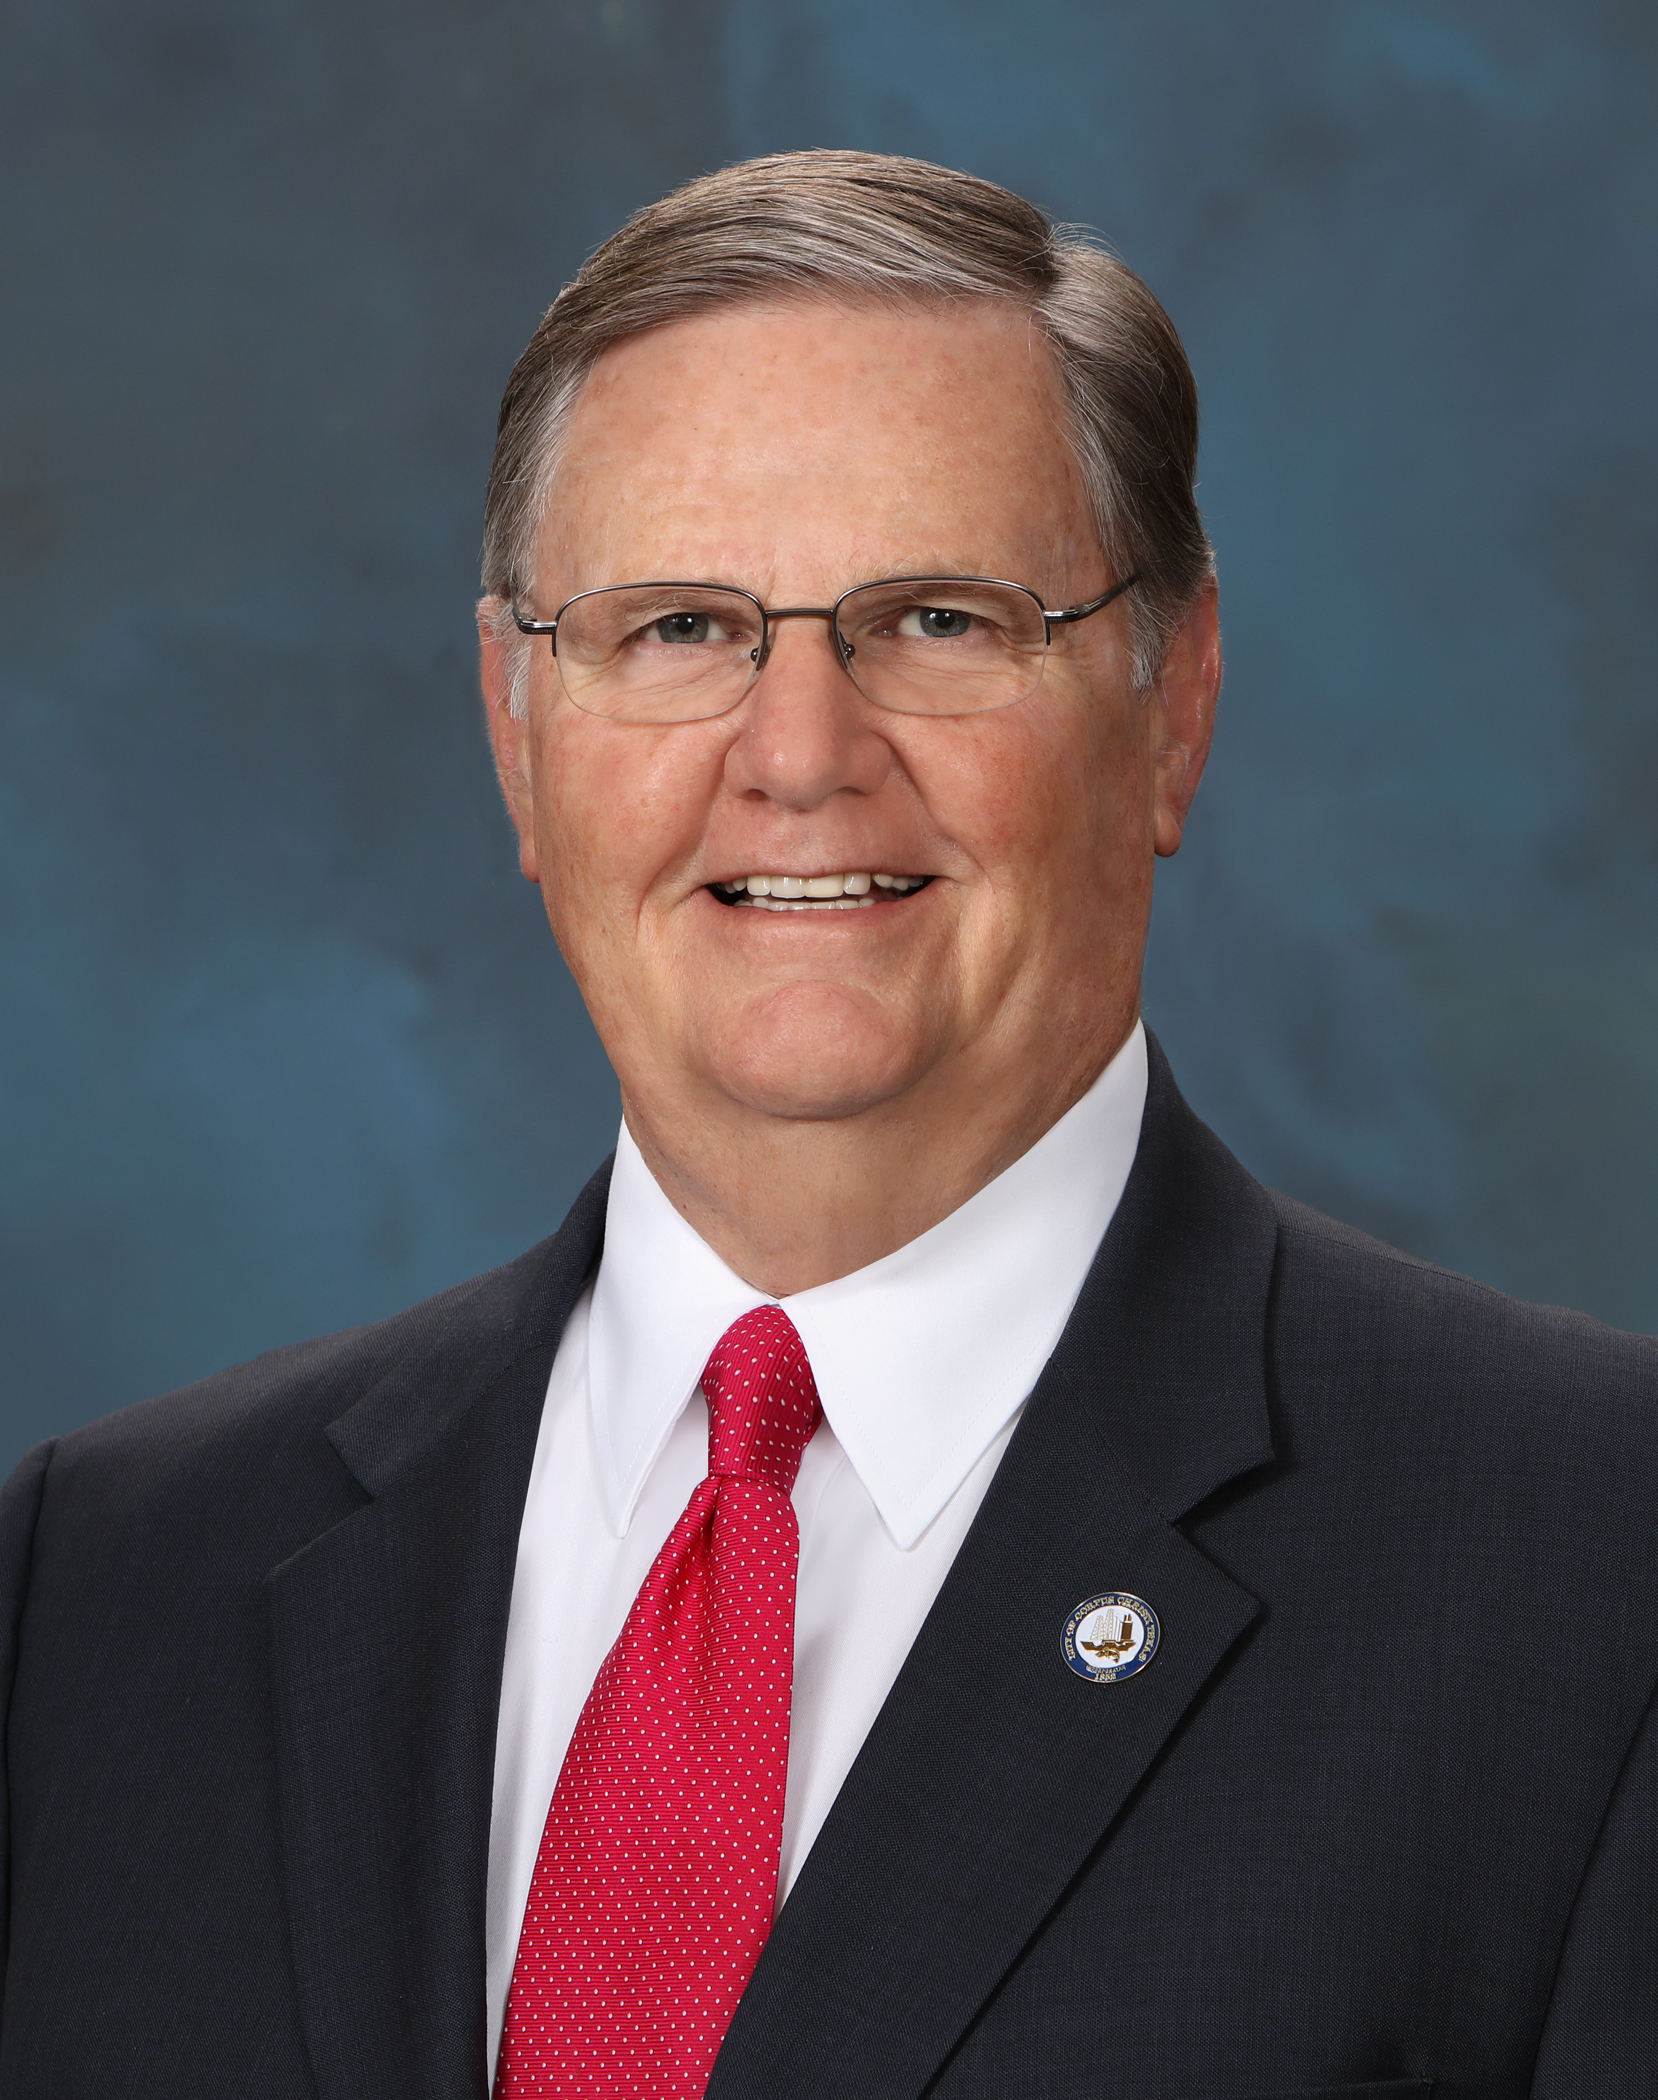 Mayor Joe McComb